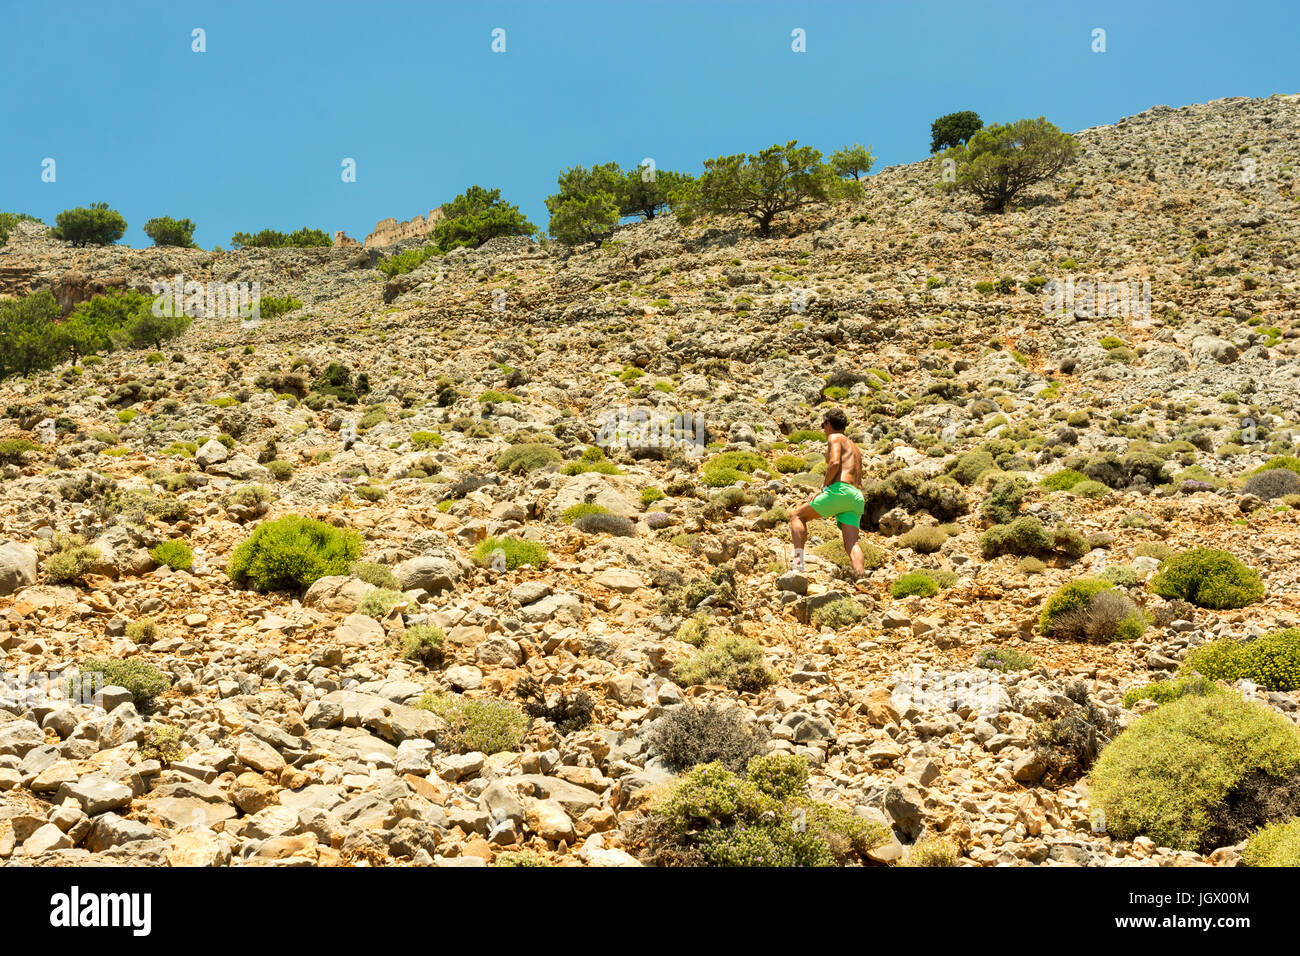 Man in brightly coloured shorts ascending a rocky hillside in hot weather to reach a castle at the top of the hill. - Stock Image